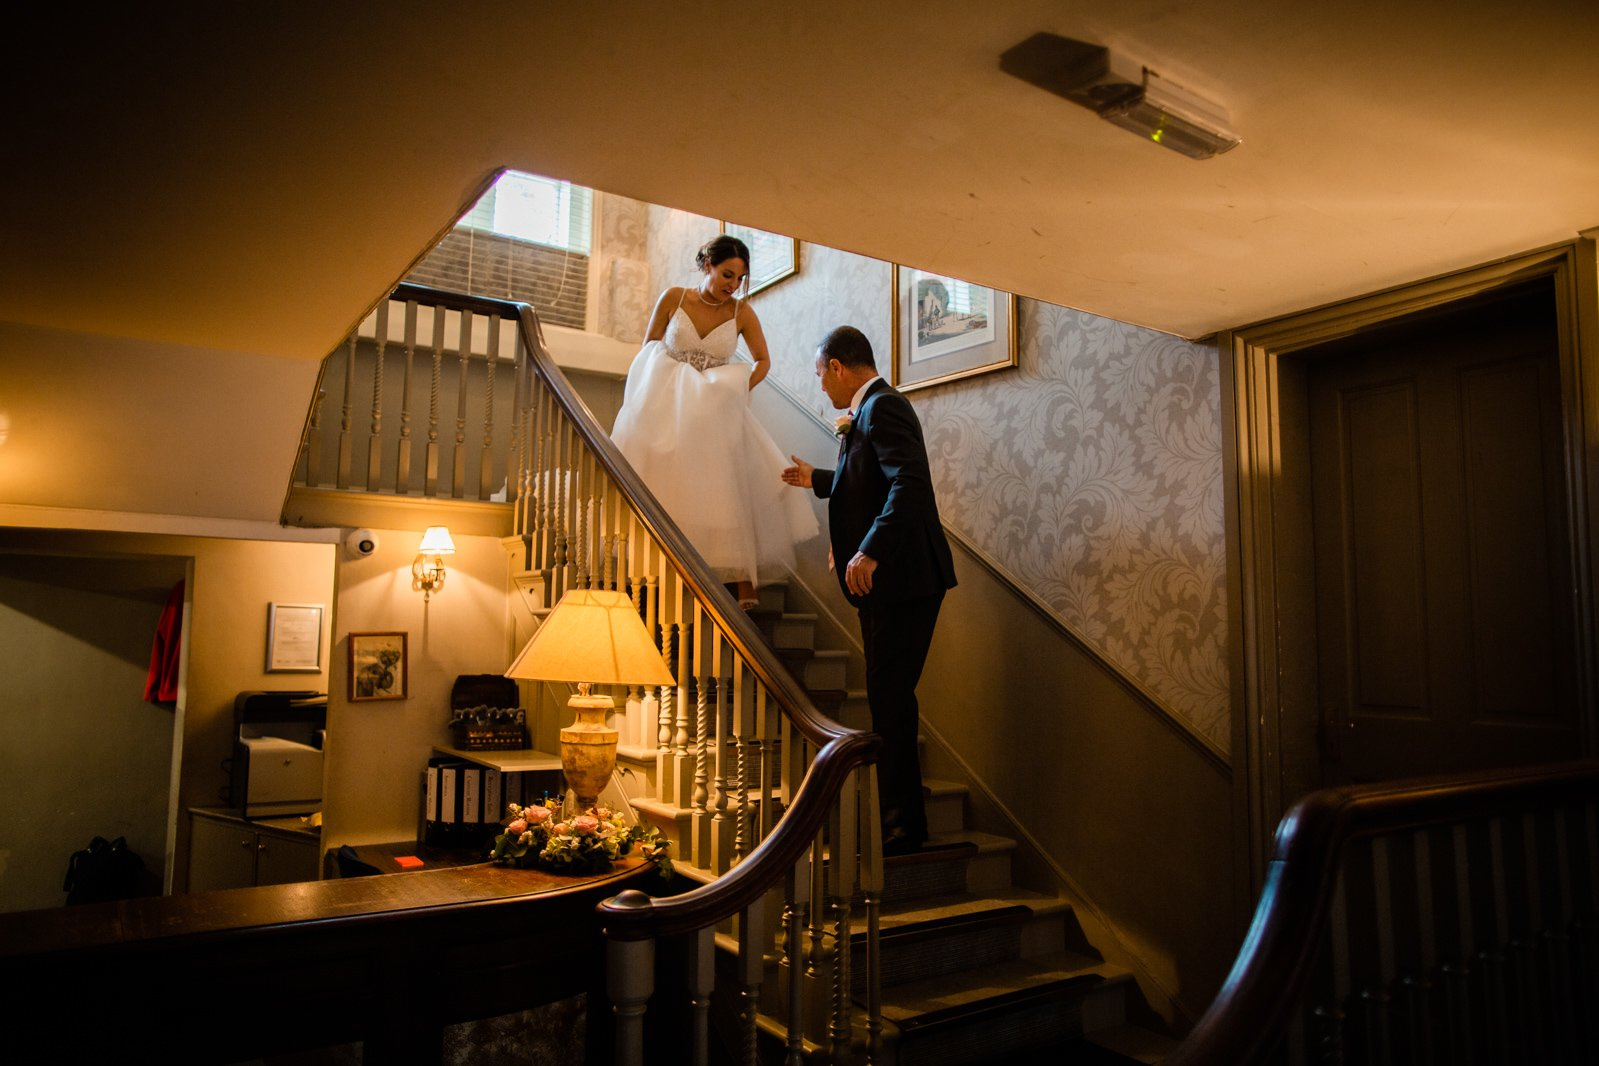 The Elephant Pangbourne Wedding - Stunning Kayleigh & Shane 27